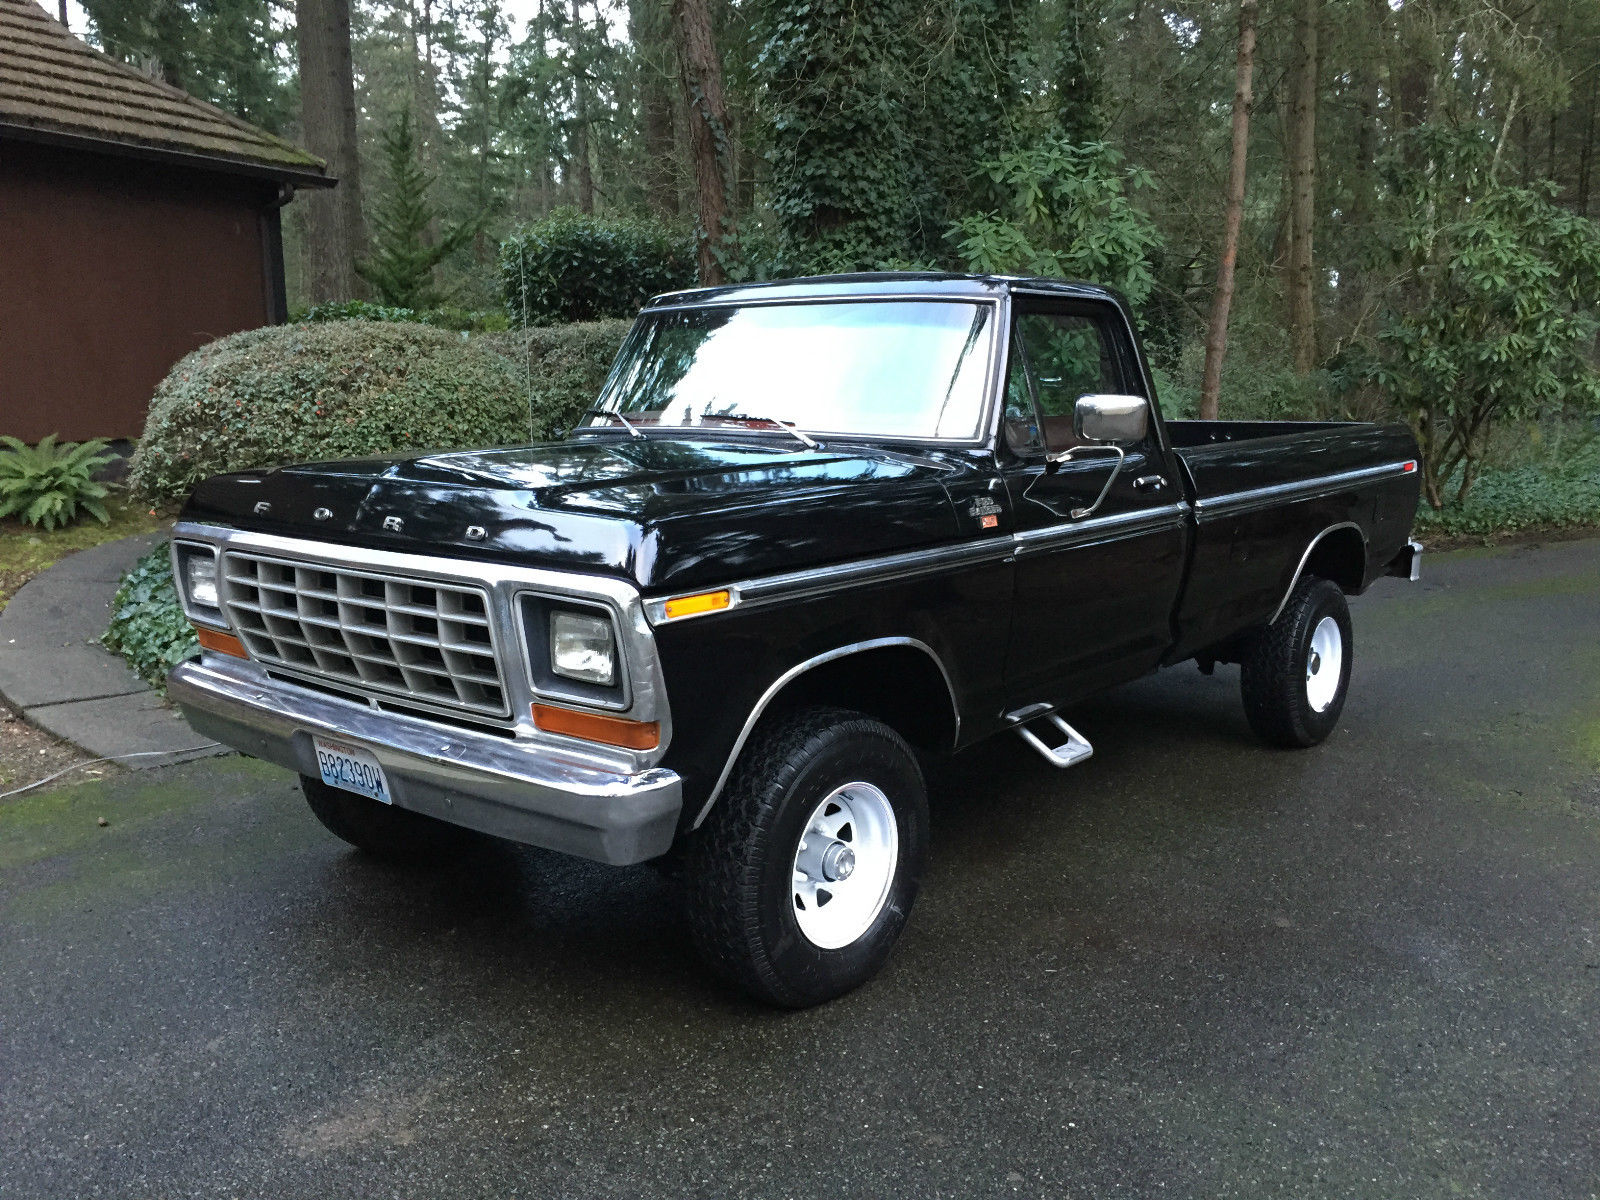 1979 Ford Truck Best Car Models 2019 2020 1948 Panel 4x4 1978 F150 Ranger Xlt Short Bed Amazing Condition 100